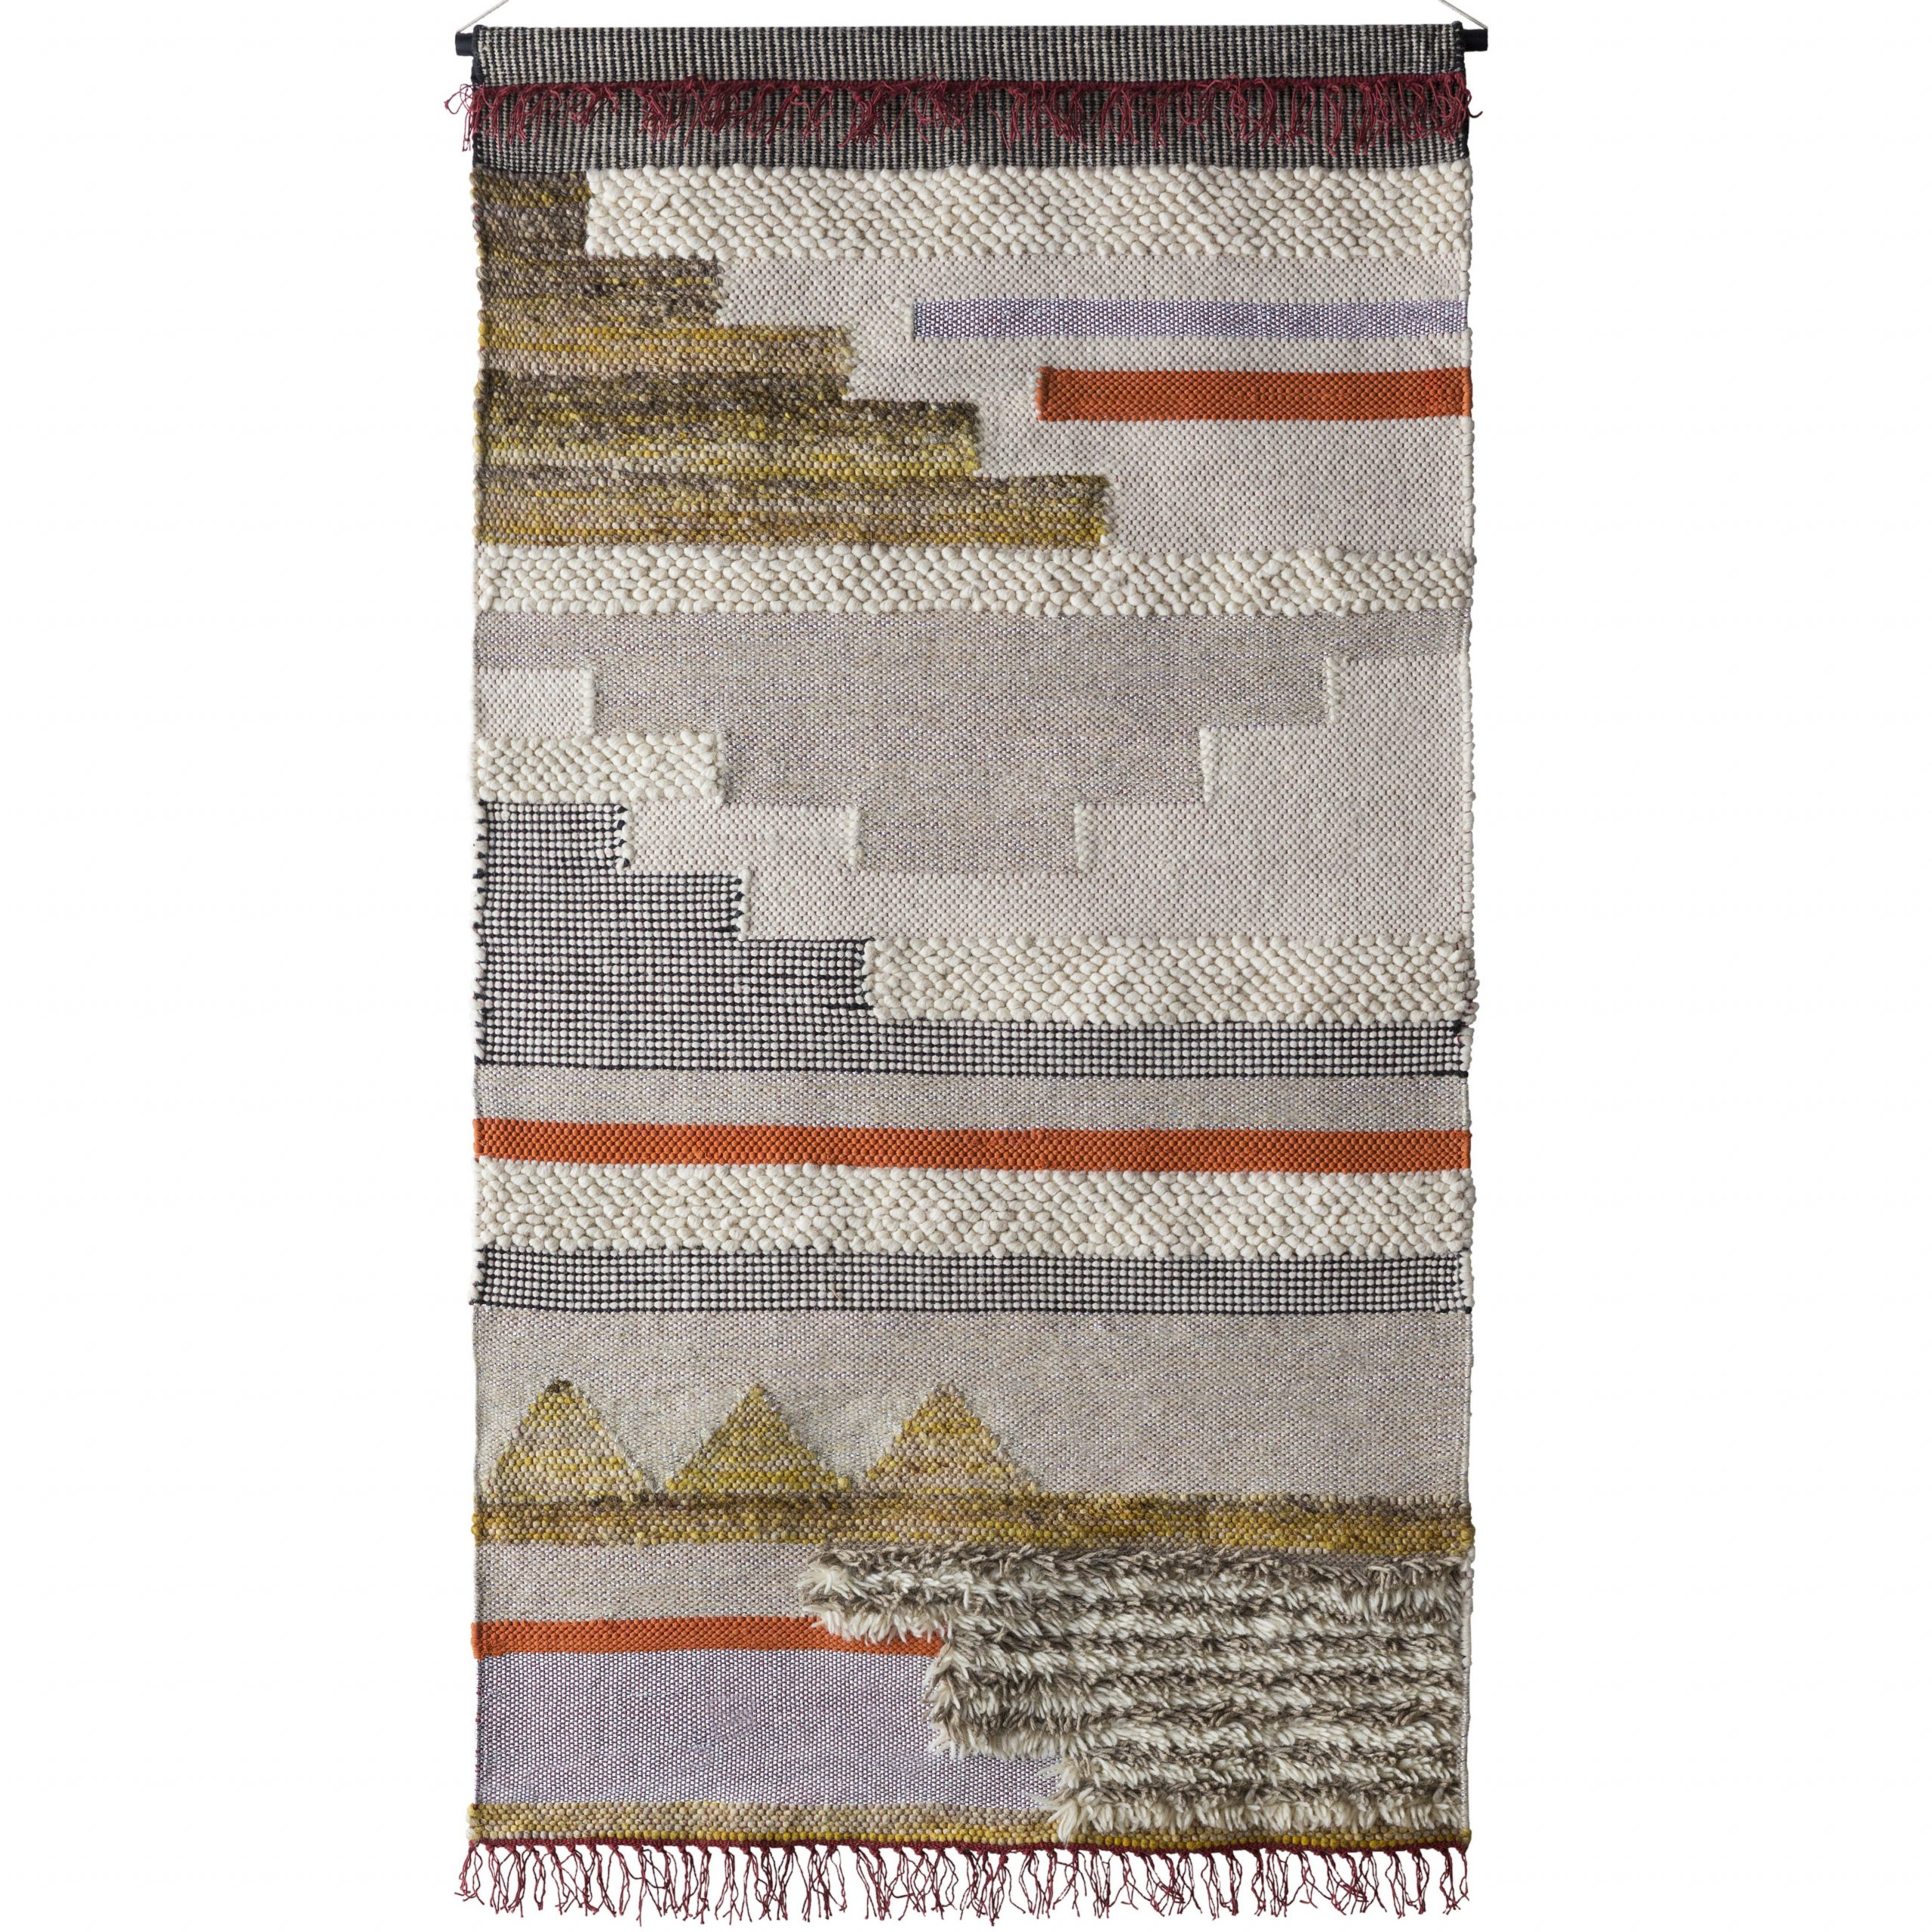 Blended Fabric Wall Hanging With Hanging Accessories For 2017 Blended Fabric In His Tapestries And Wall Hangings (View 3 of 20)